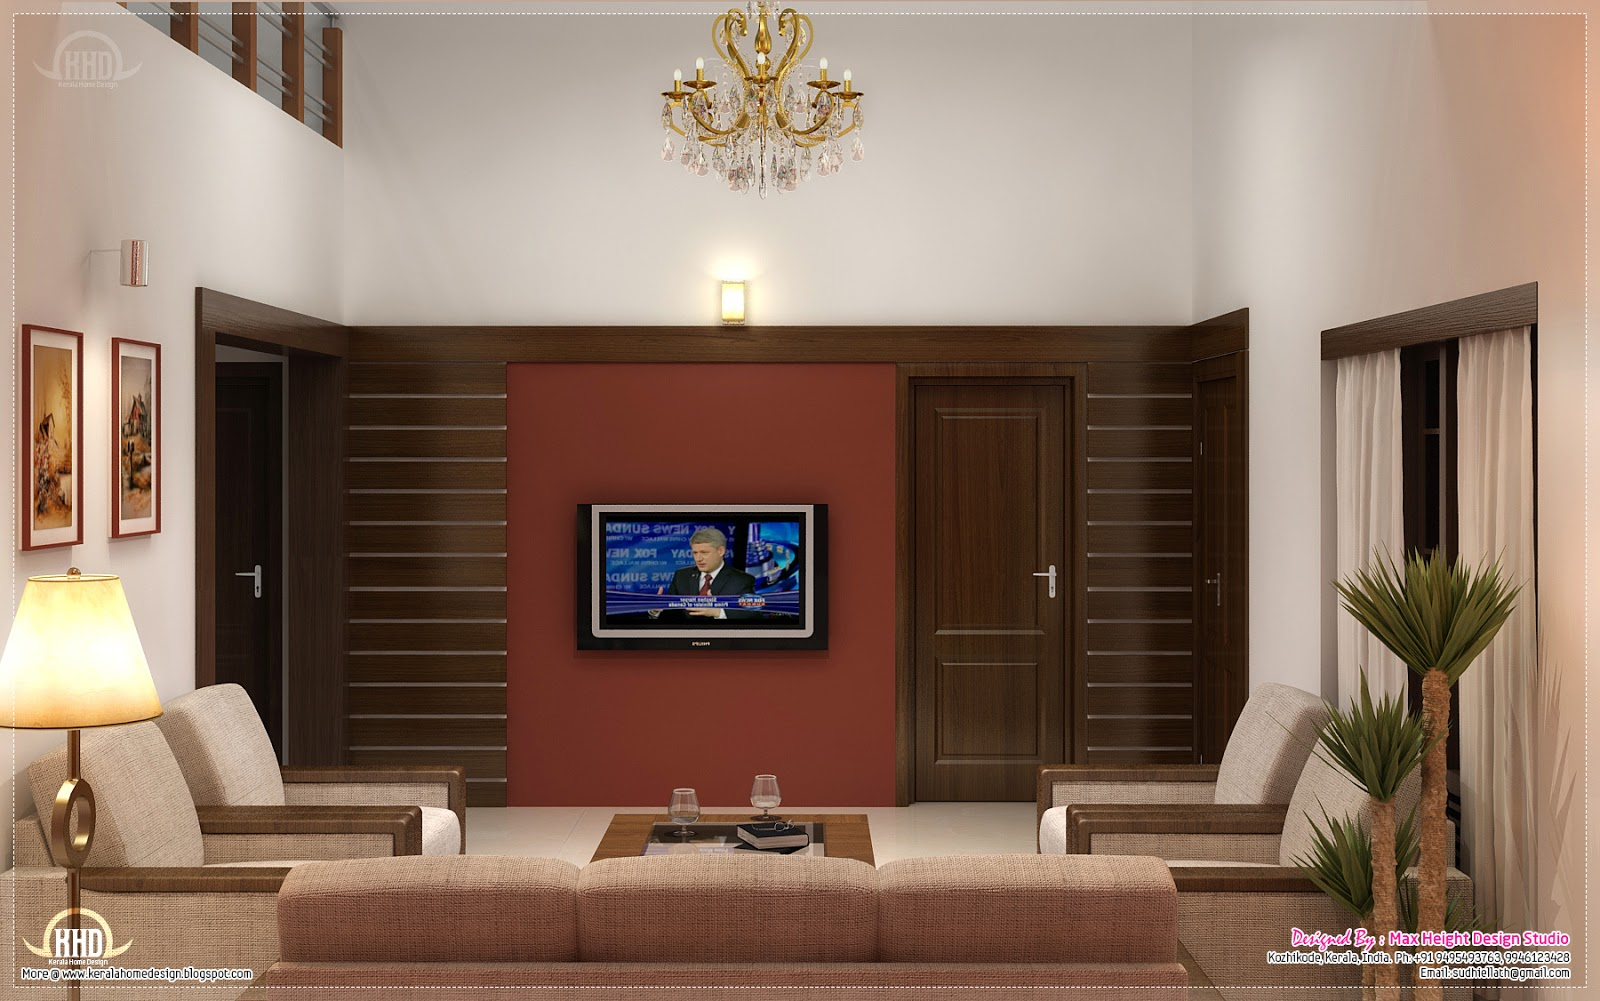 Home interior design ideas home kerala plans for Home design ideas interior